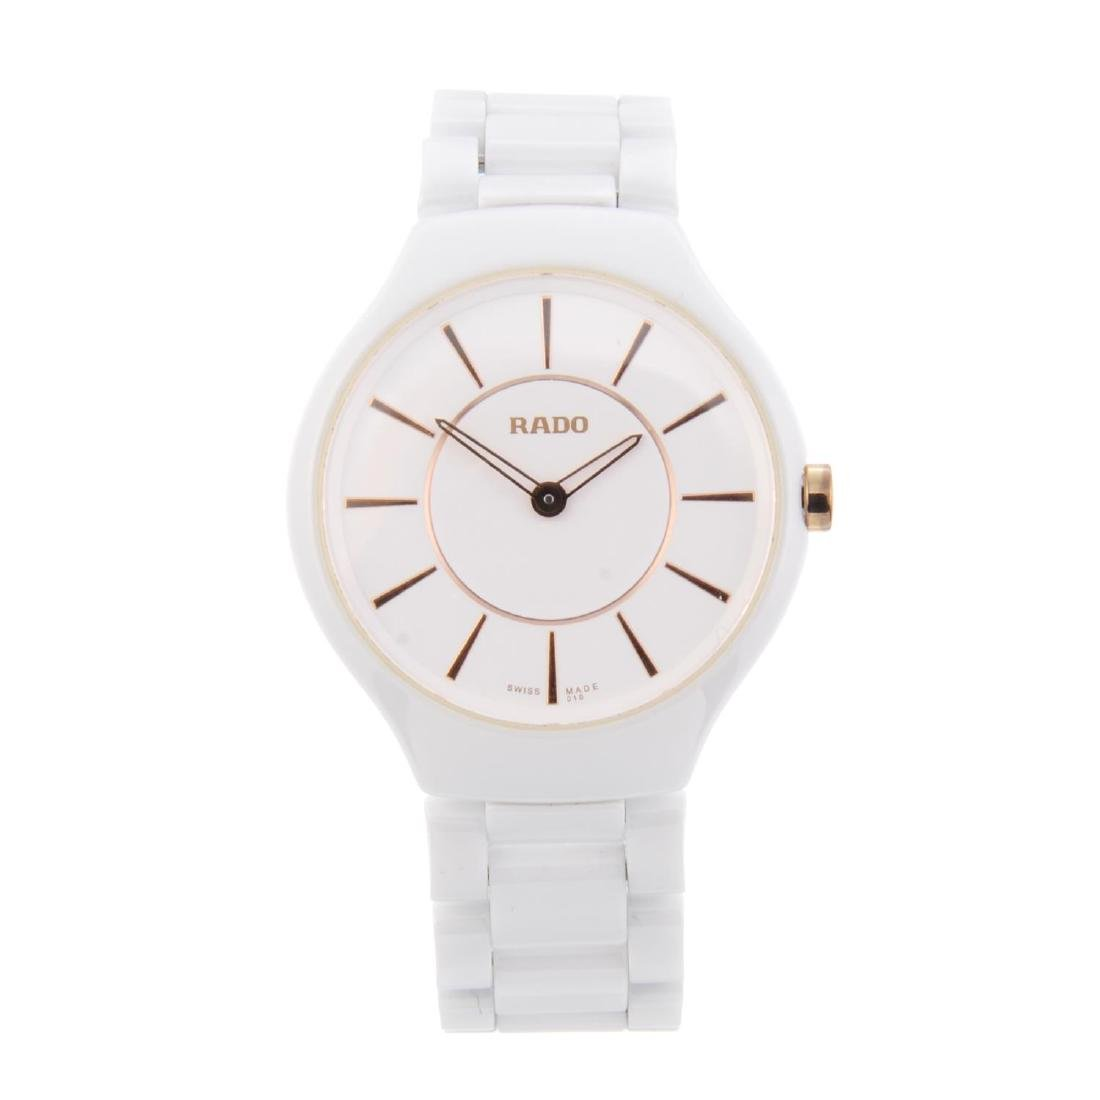 RADO - a lady's True Thinline bracelet watch. White